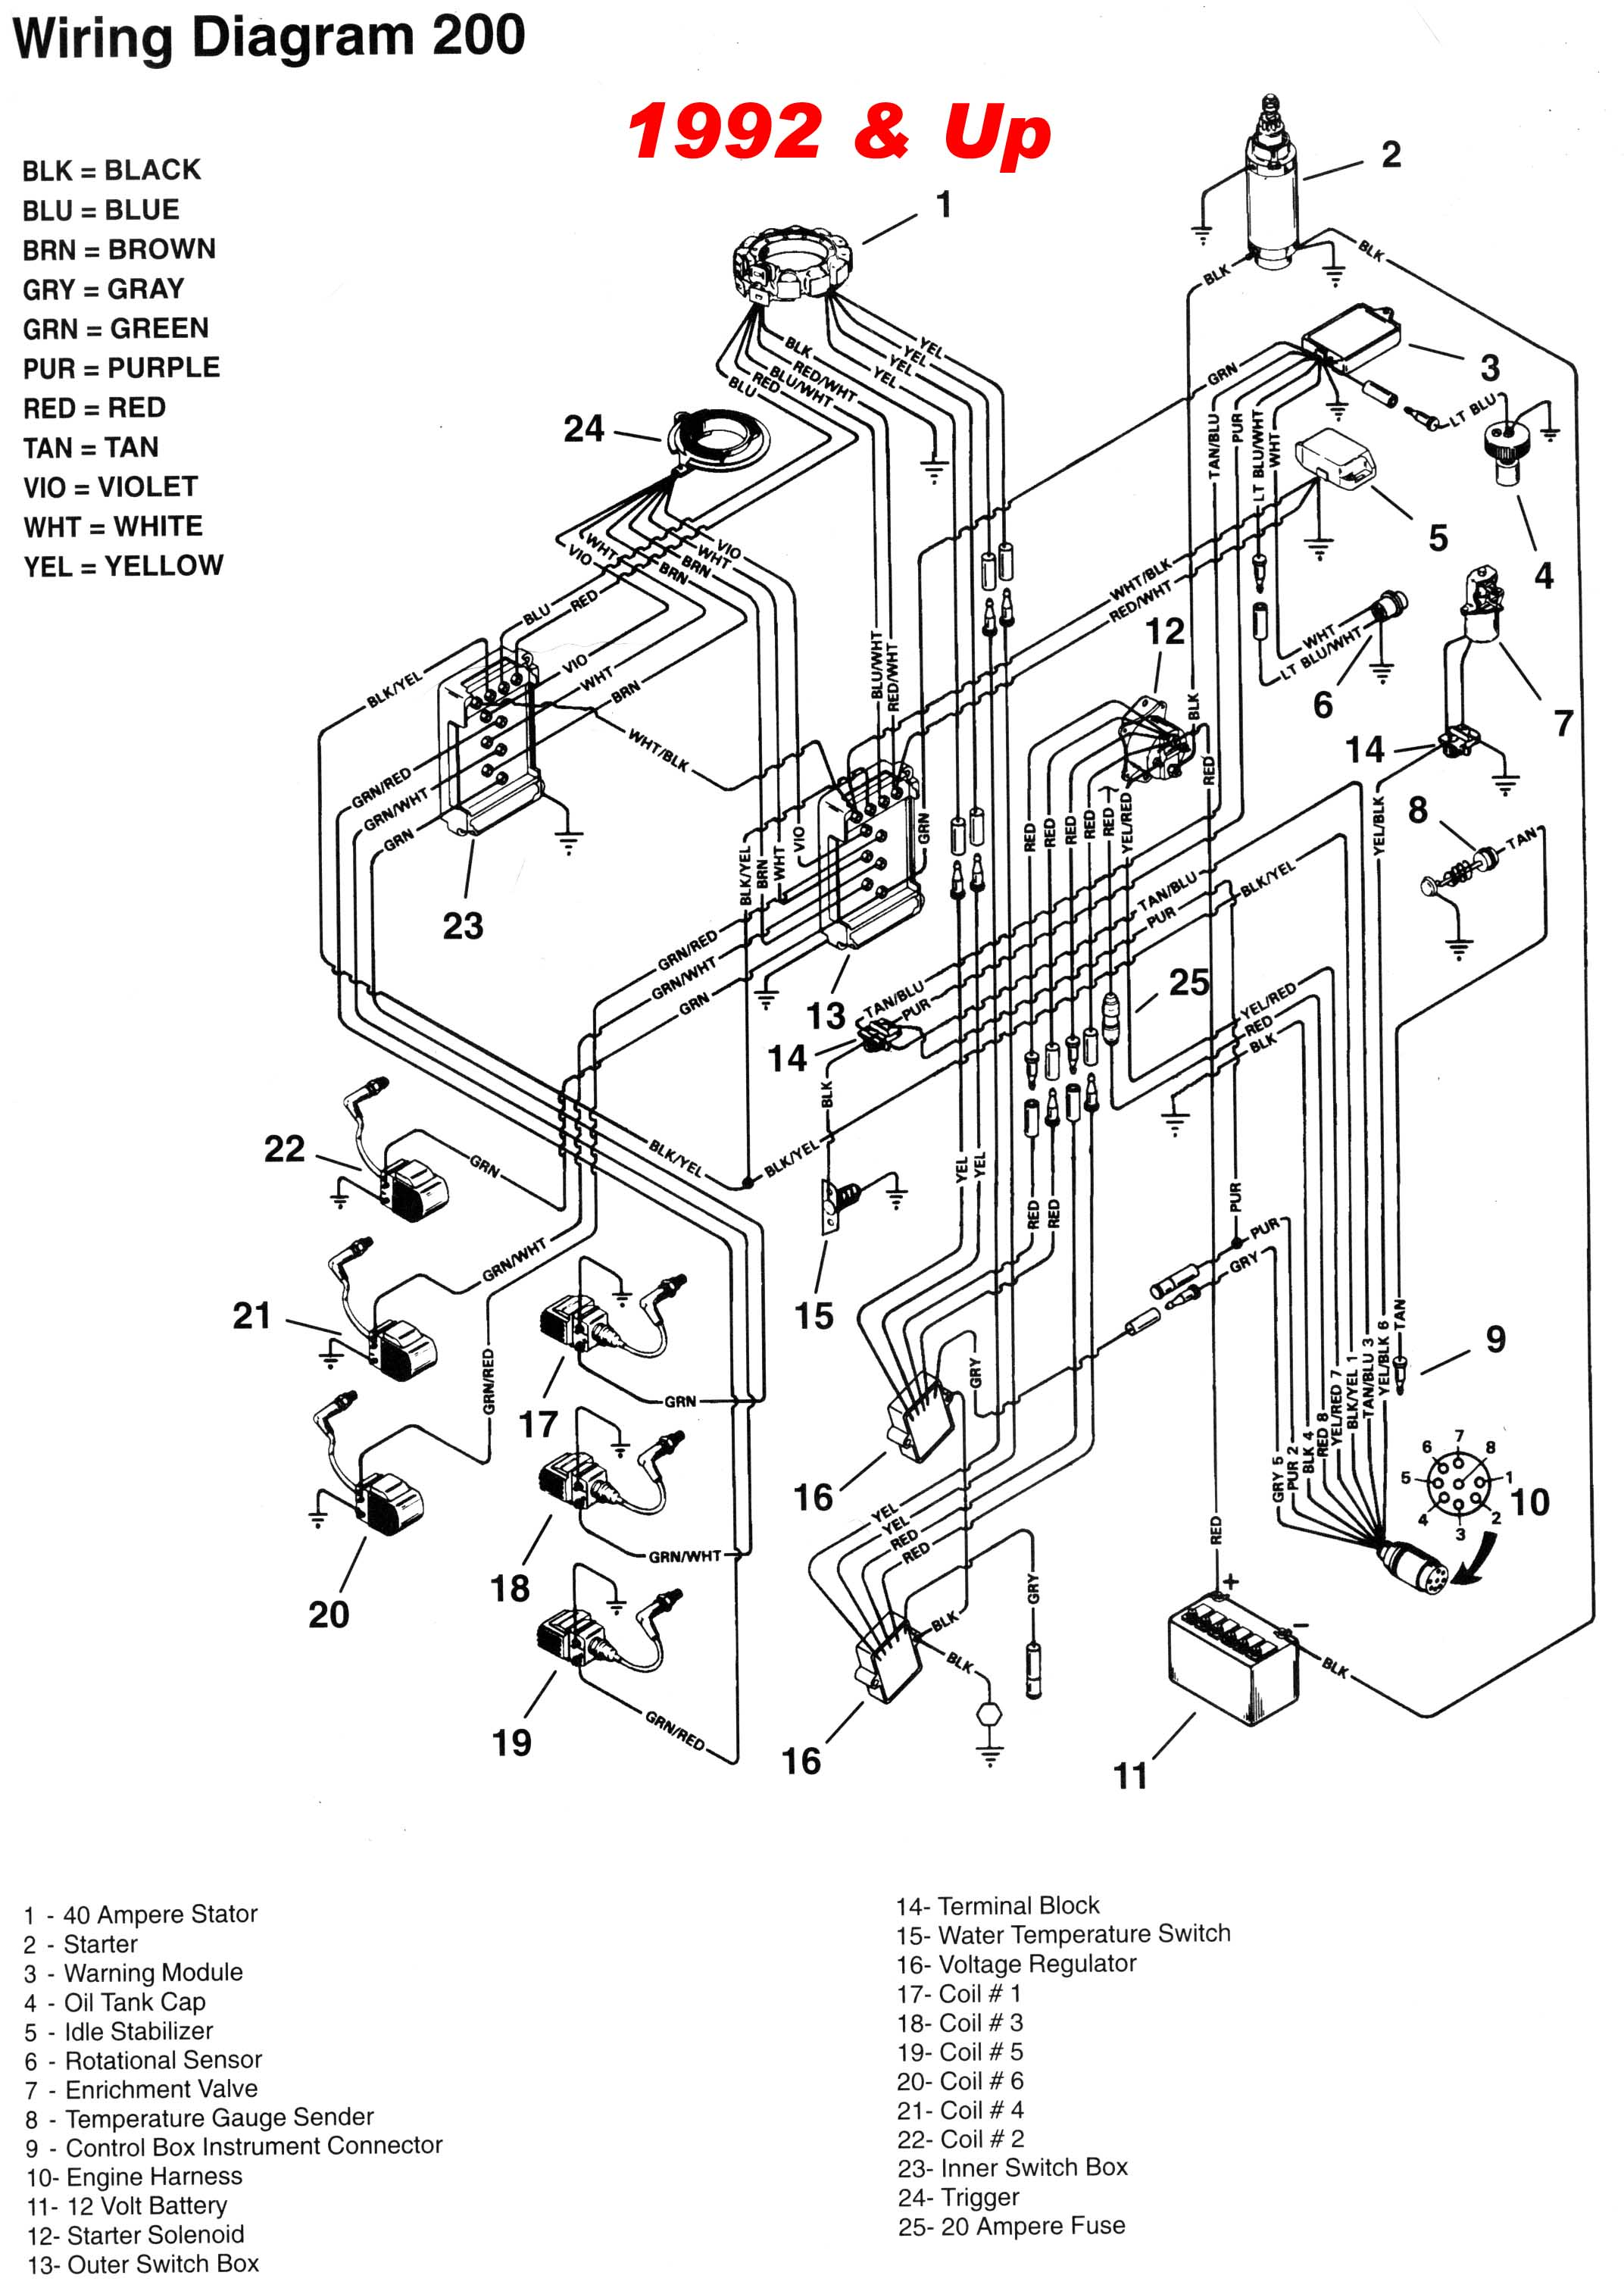 mercury_92up_200_wiring mercury outboard 2 5 and 3 0l v6 and gearcase faq mercury 14 pin wiring harness diagram at soozxer.org